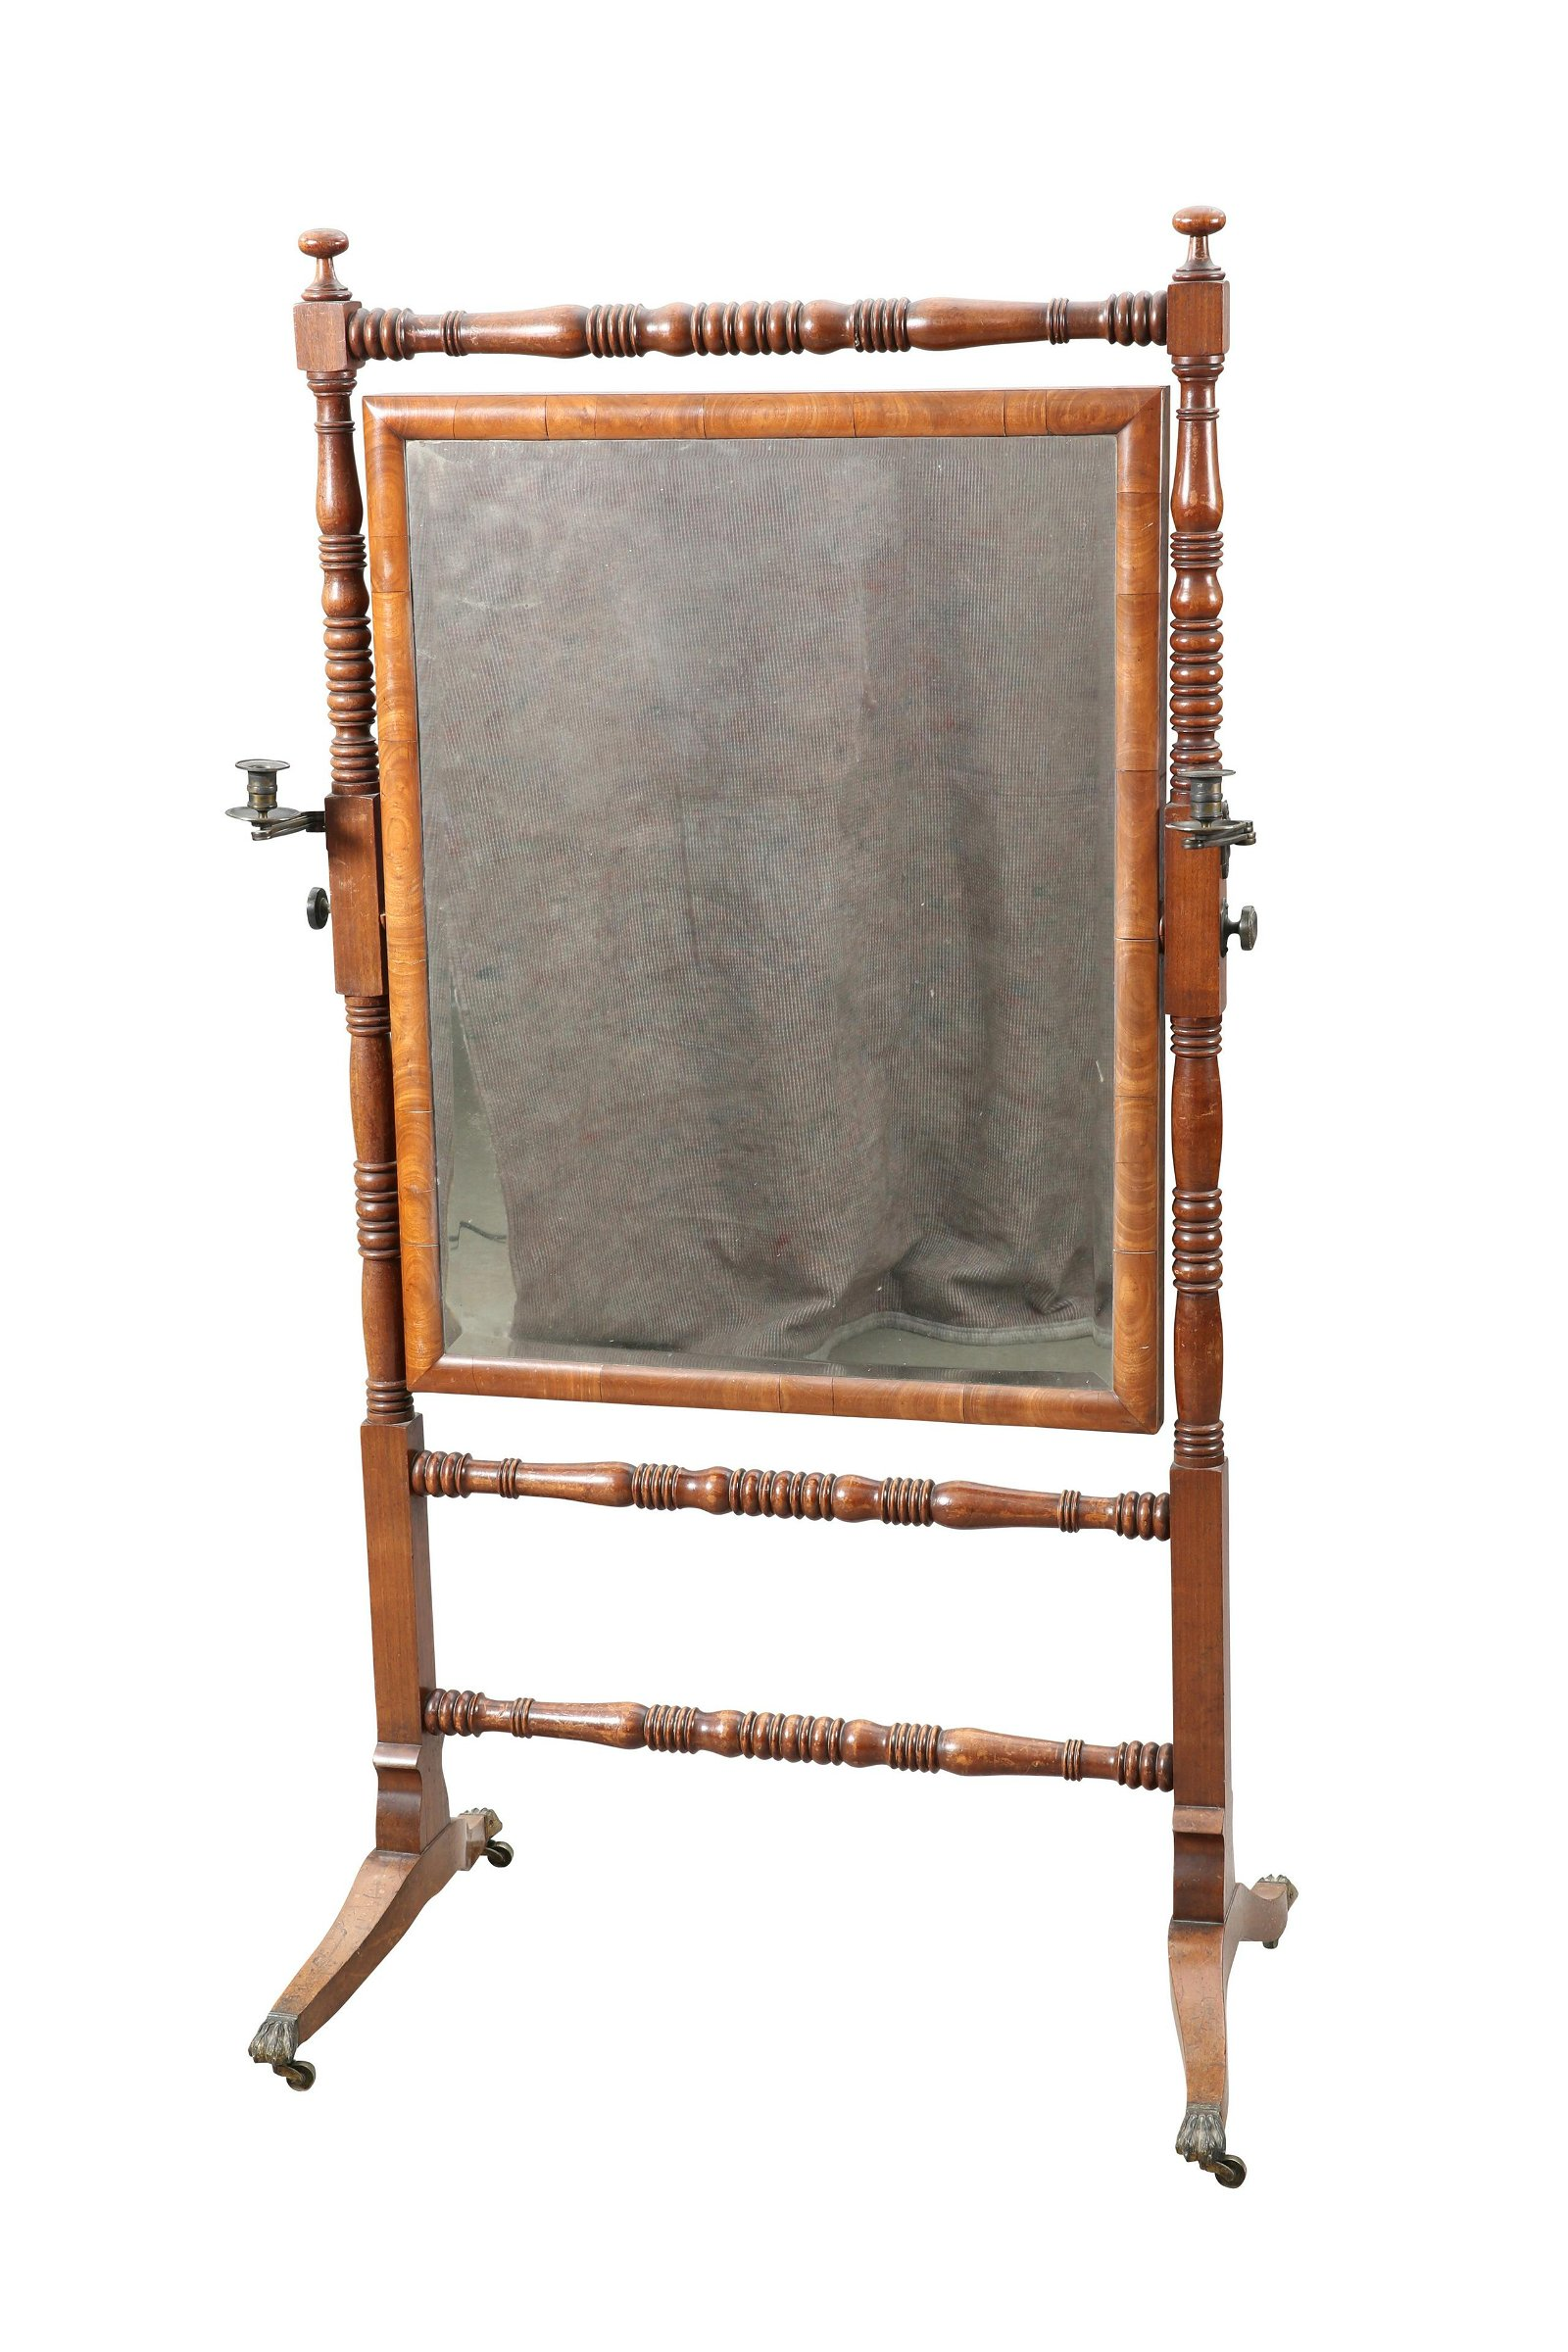 A LATE REGENCY MAHOGANY CHEVAL MIRROR, the bevelled